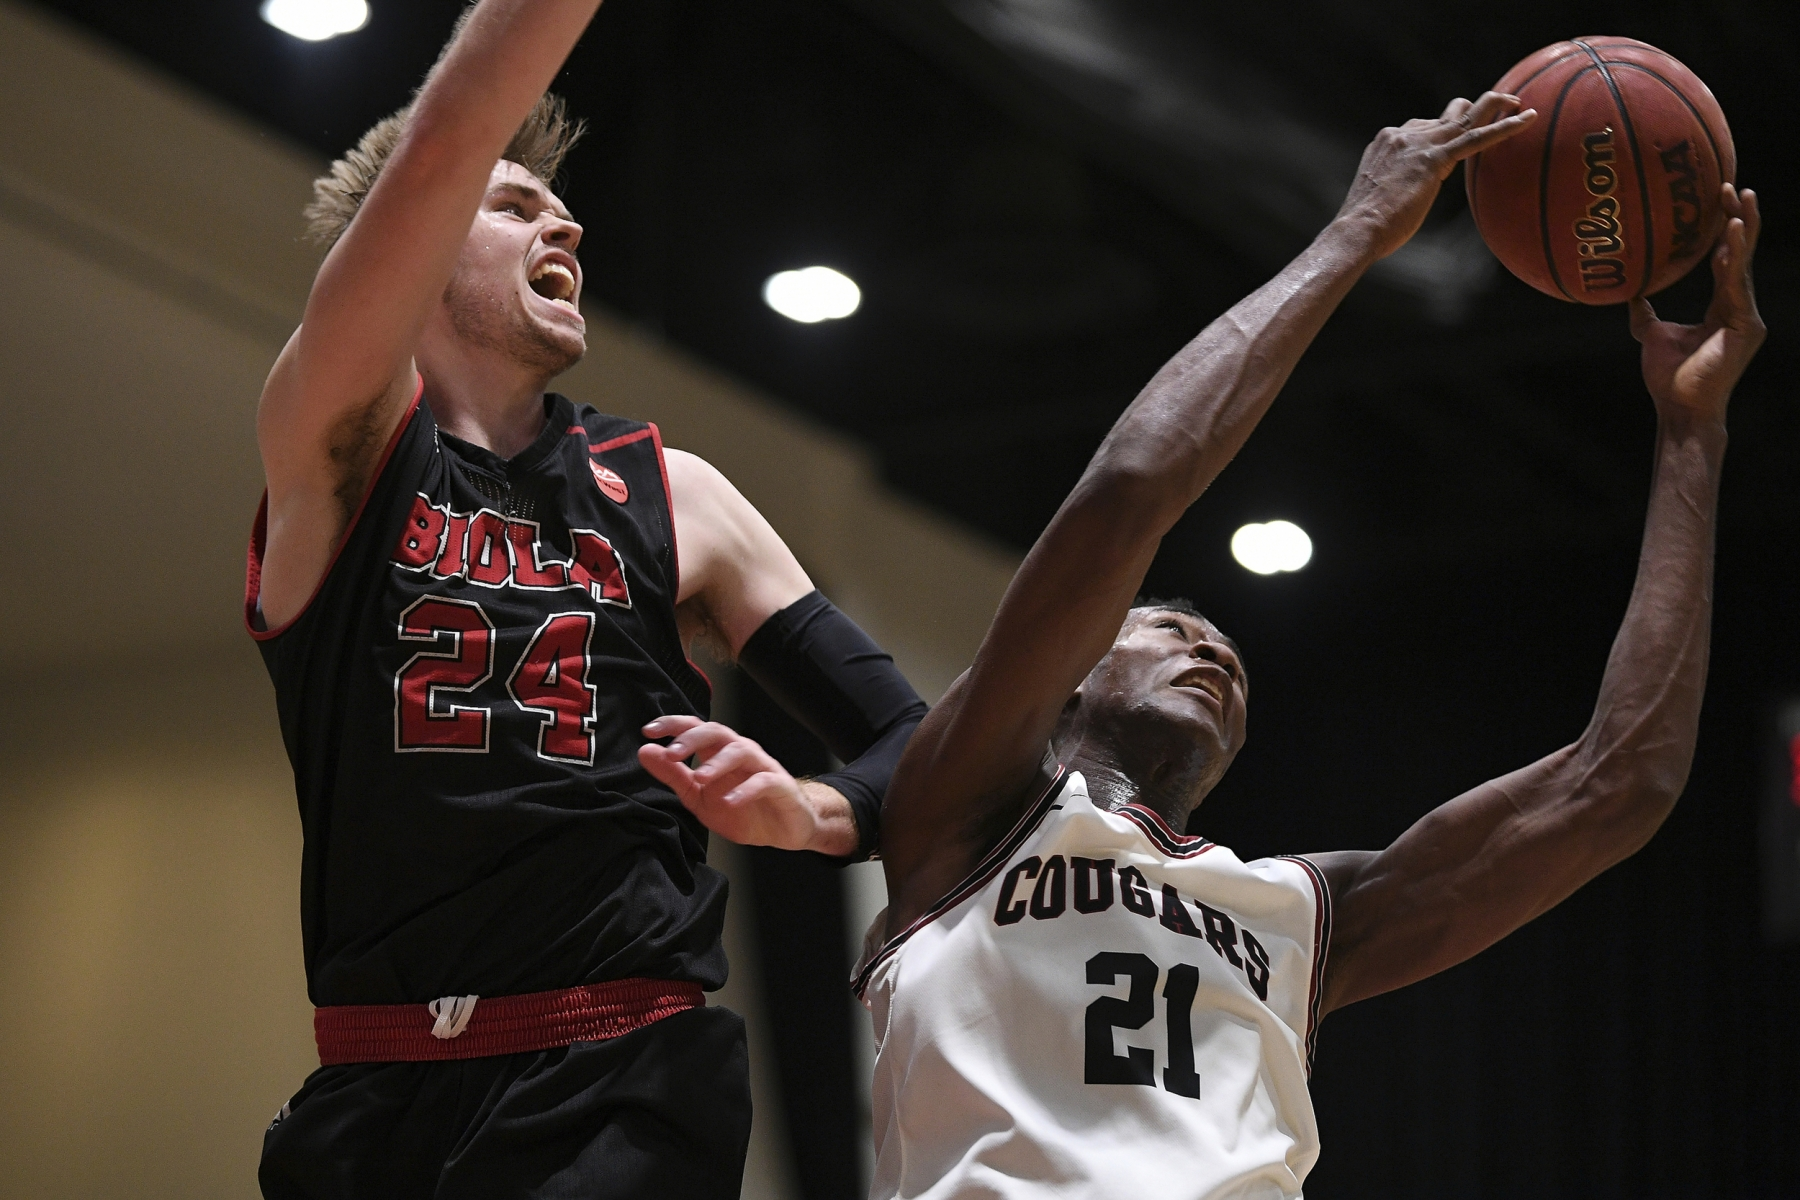 Azusa Pacific forward Selom Mawugbe (21) goes up for a layup against Biola forward Jesse Elrod (24) during a semifinal of the PacWest Men's Basketball Championship in the Felix Event Center at Azusa Pacific University Friday, Mar. 6, 2020, in Azusa.